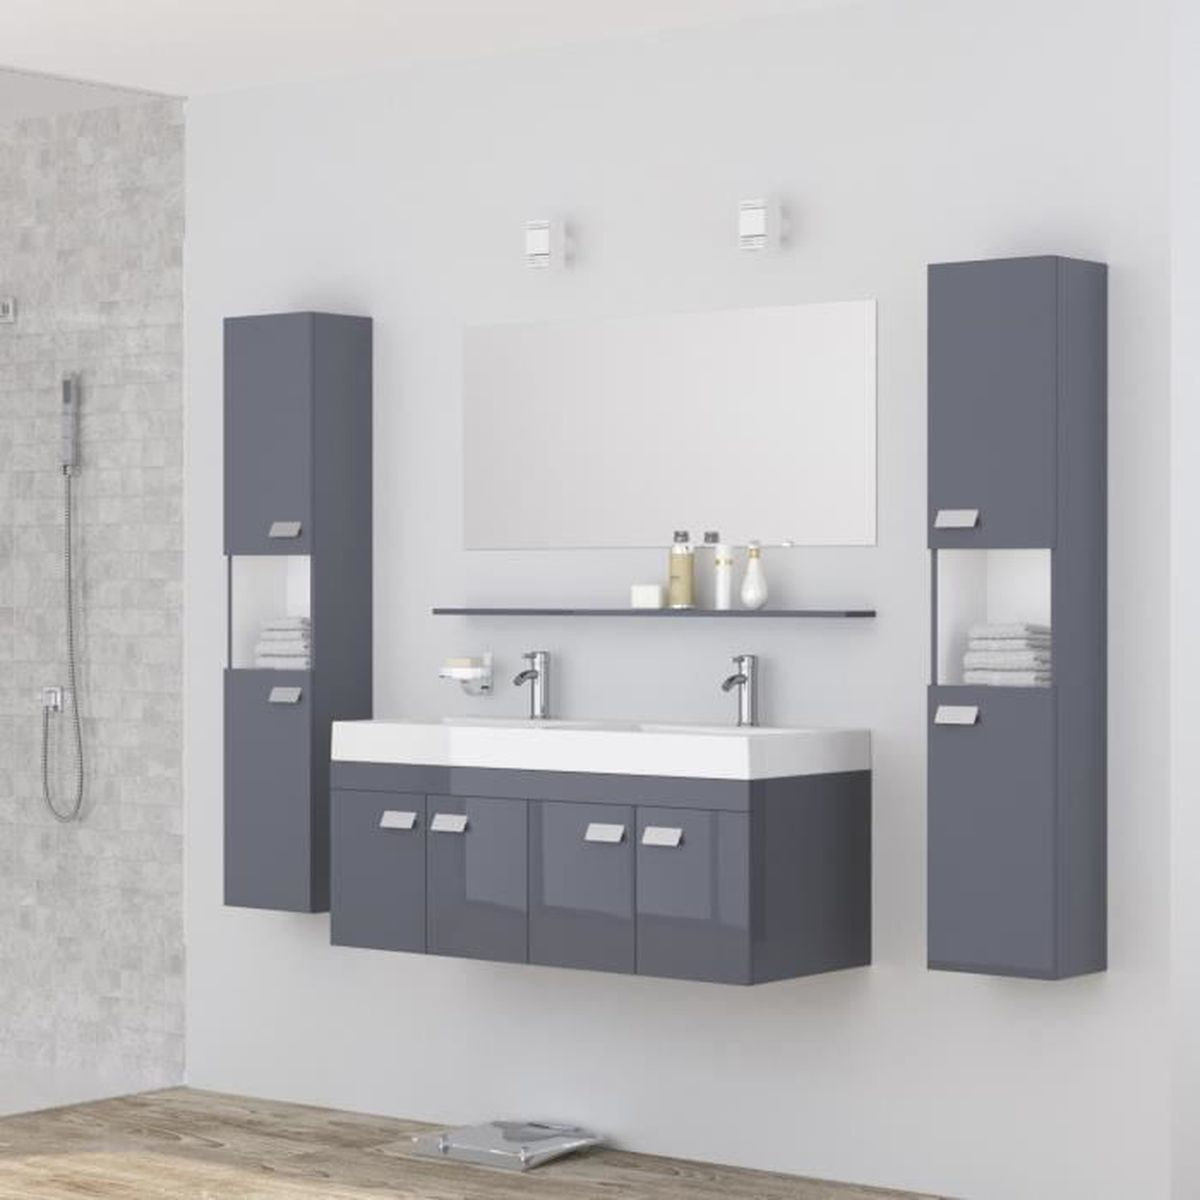 alpos salle de bain compl te double vasque 120 cm laqu gris brillant achat vente salle de. Black Bedroom Furniture Sets. Home Design Ideas